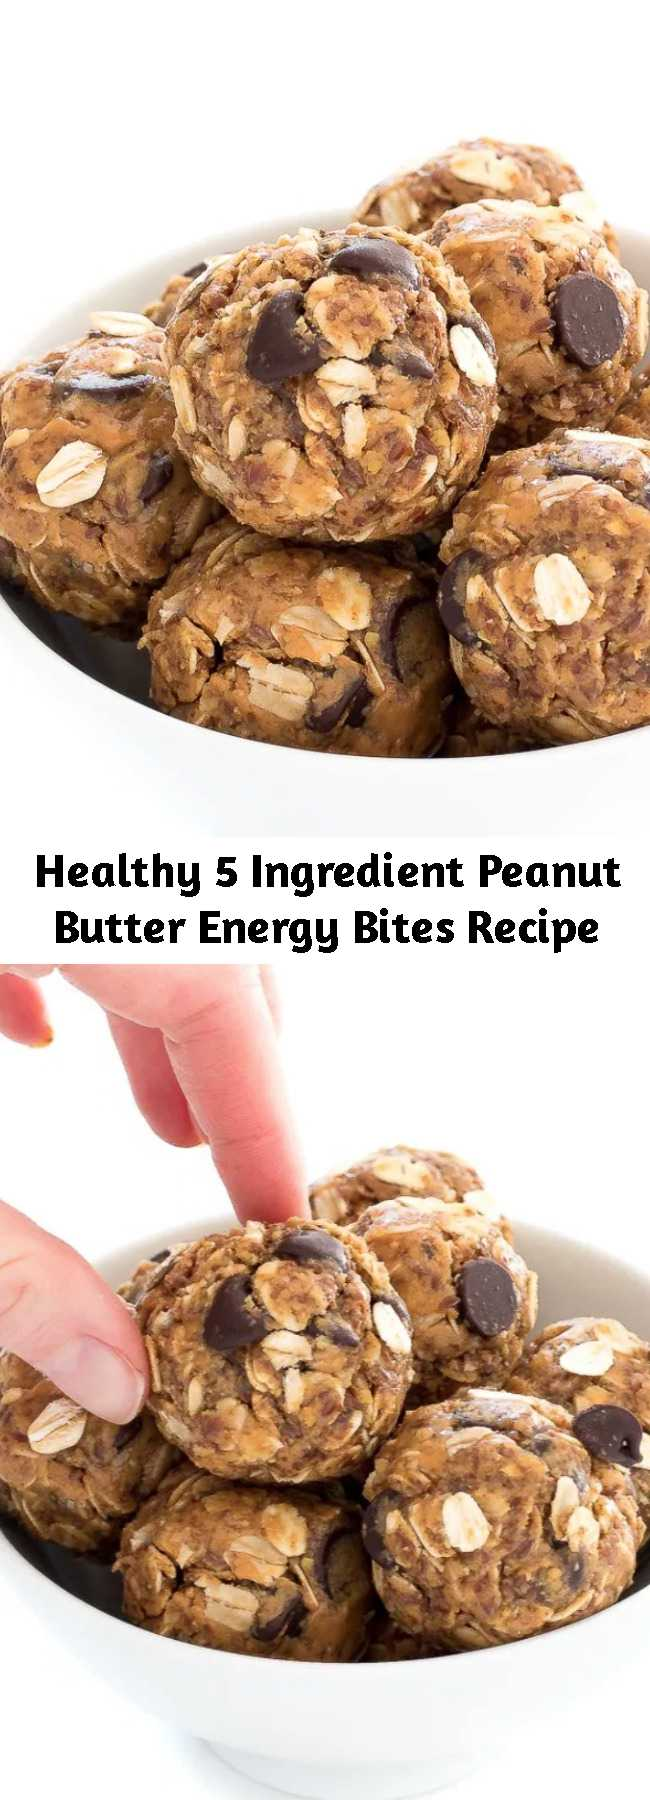 Healthy 5 Ingredient Peanut Butter Energy Bites Recipe - No Bake 5 Ingredient Peanut Butter Energy Bites. Loaded with old fashioned oats, peanut butter and flax seeds. A healthy protein packed breakfast or snack! #recipe #healthy #peanut #butter #energy #bites #snack #breakfast